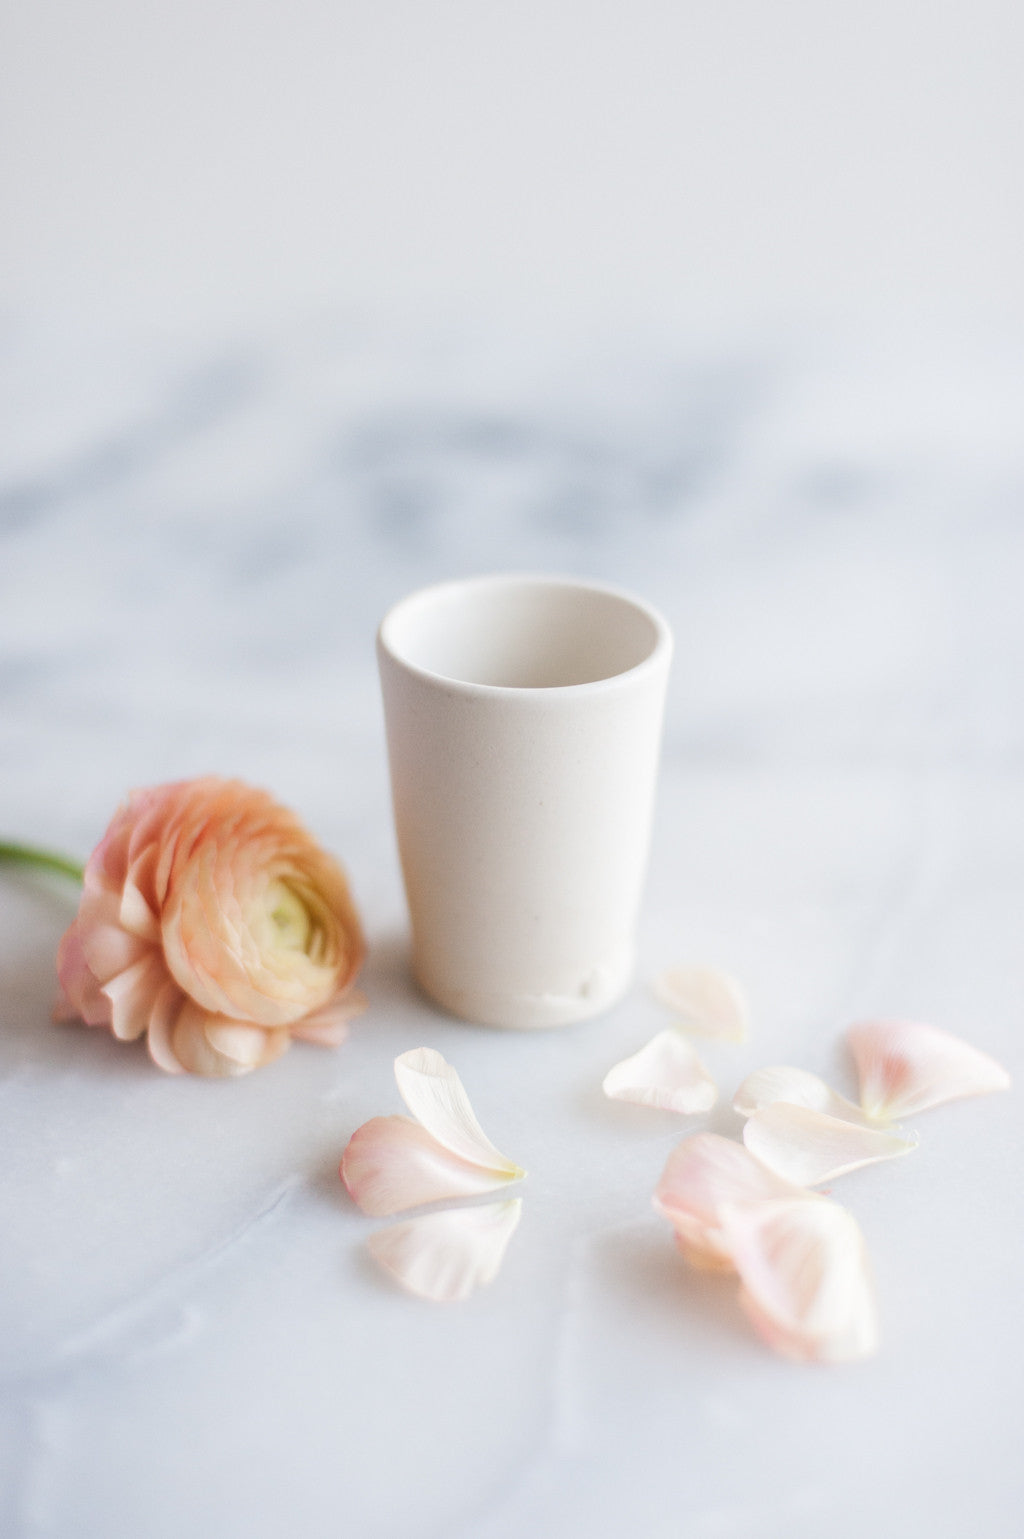 Mini White Tumbler by Beanpole Pottery